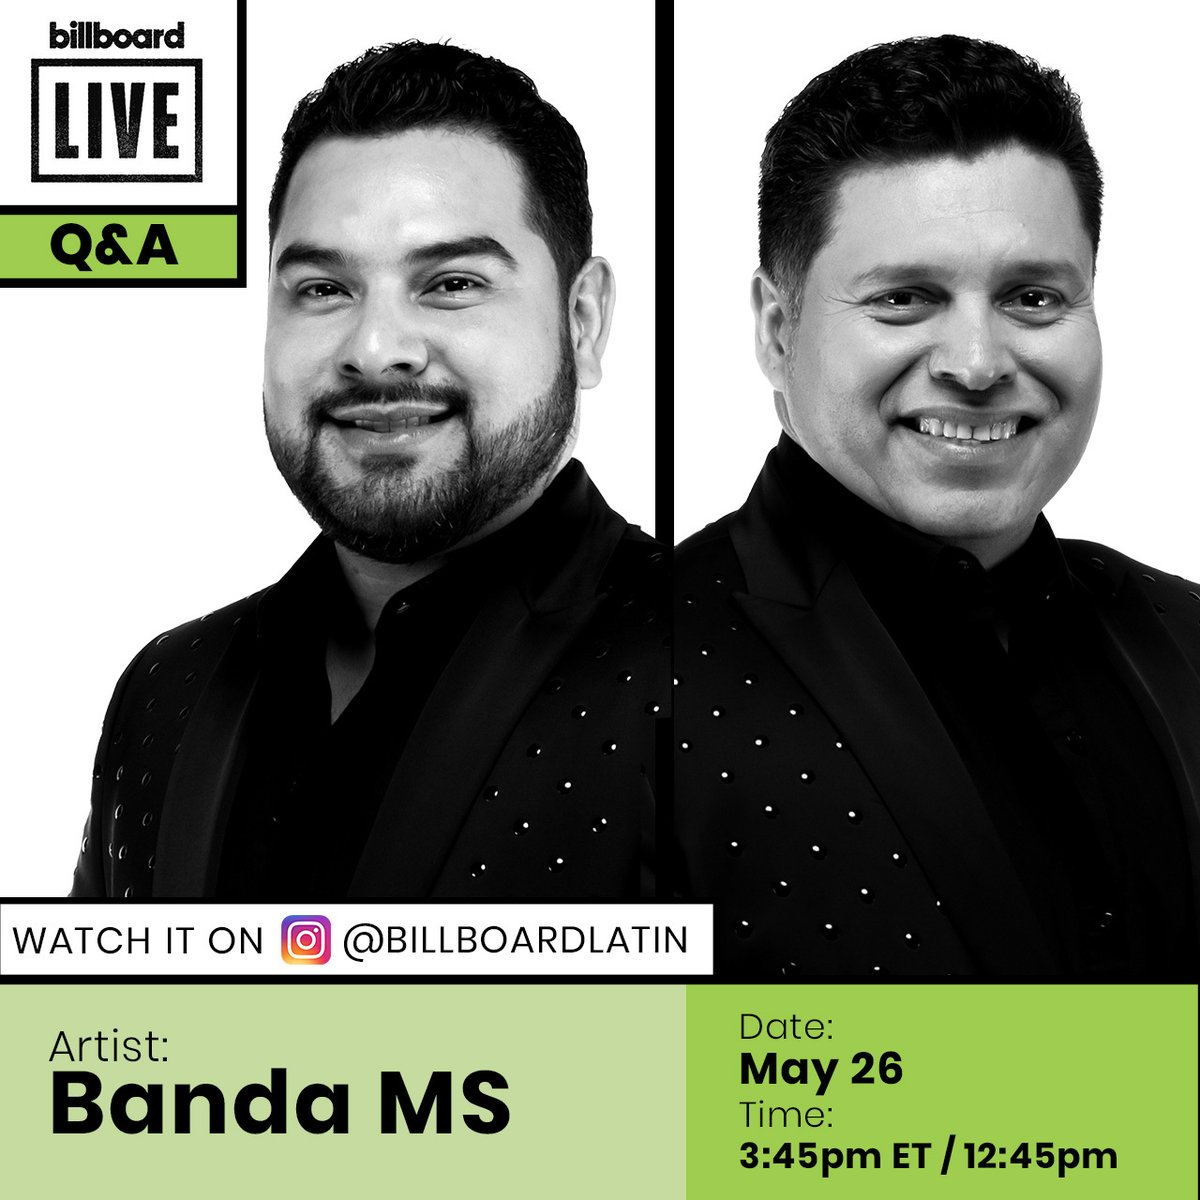 .@BANDA_MS will be joining us for a #BillboardLive Q&A today! Tune in at 3:45pm ET/12:45pm PT to watch: trib.al/9qfF8Ac